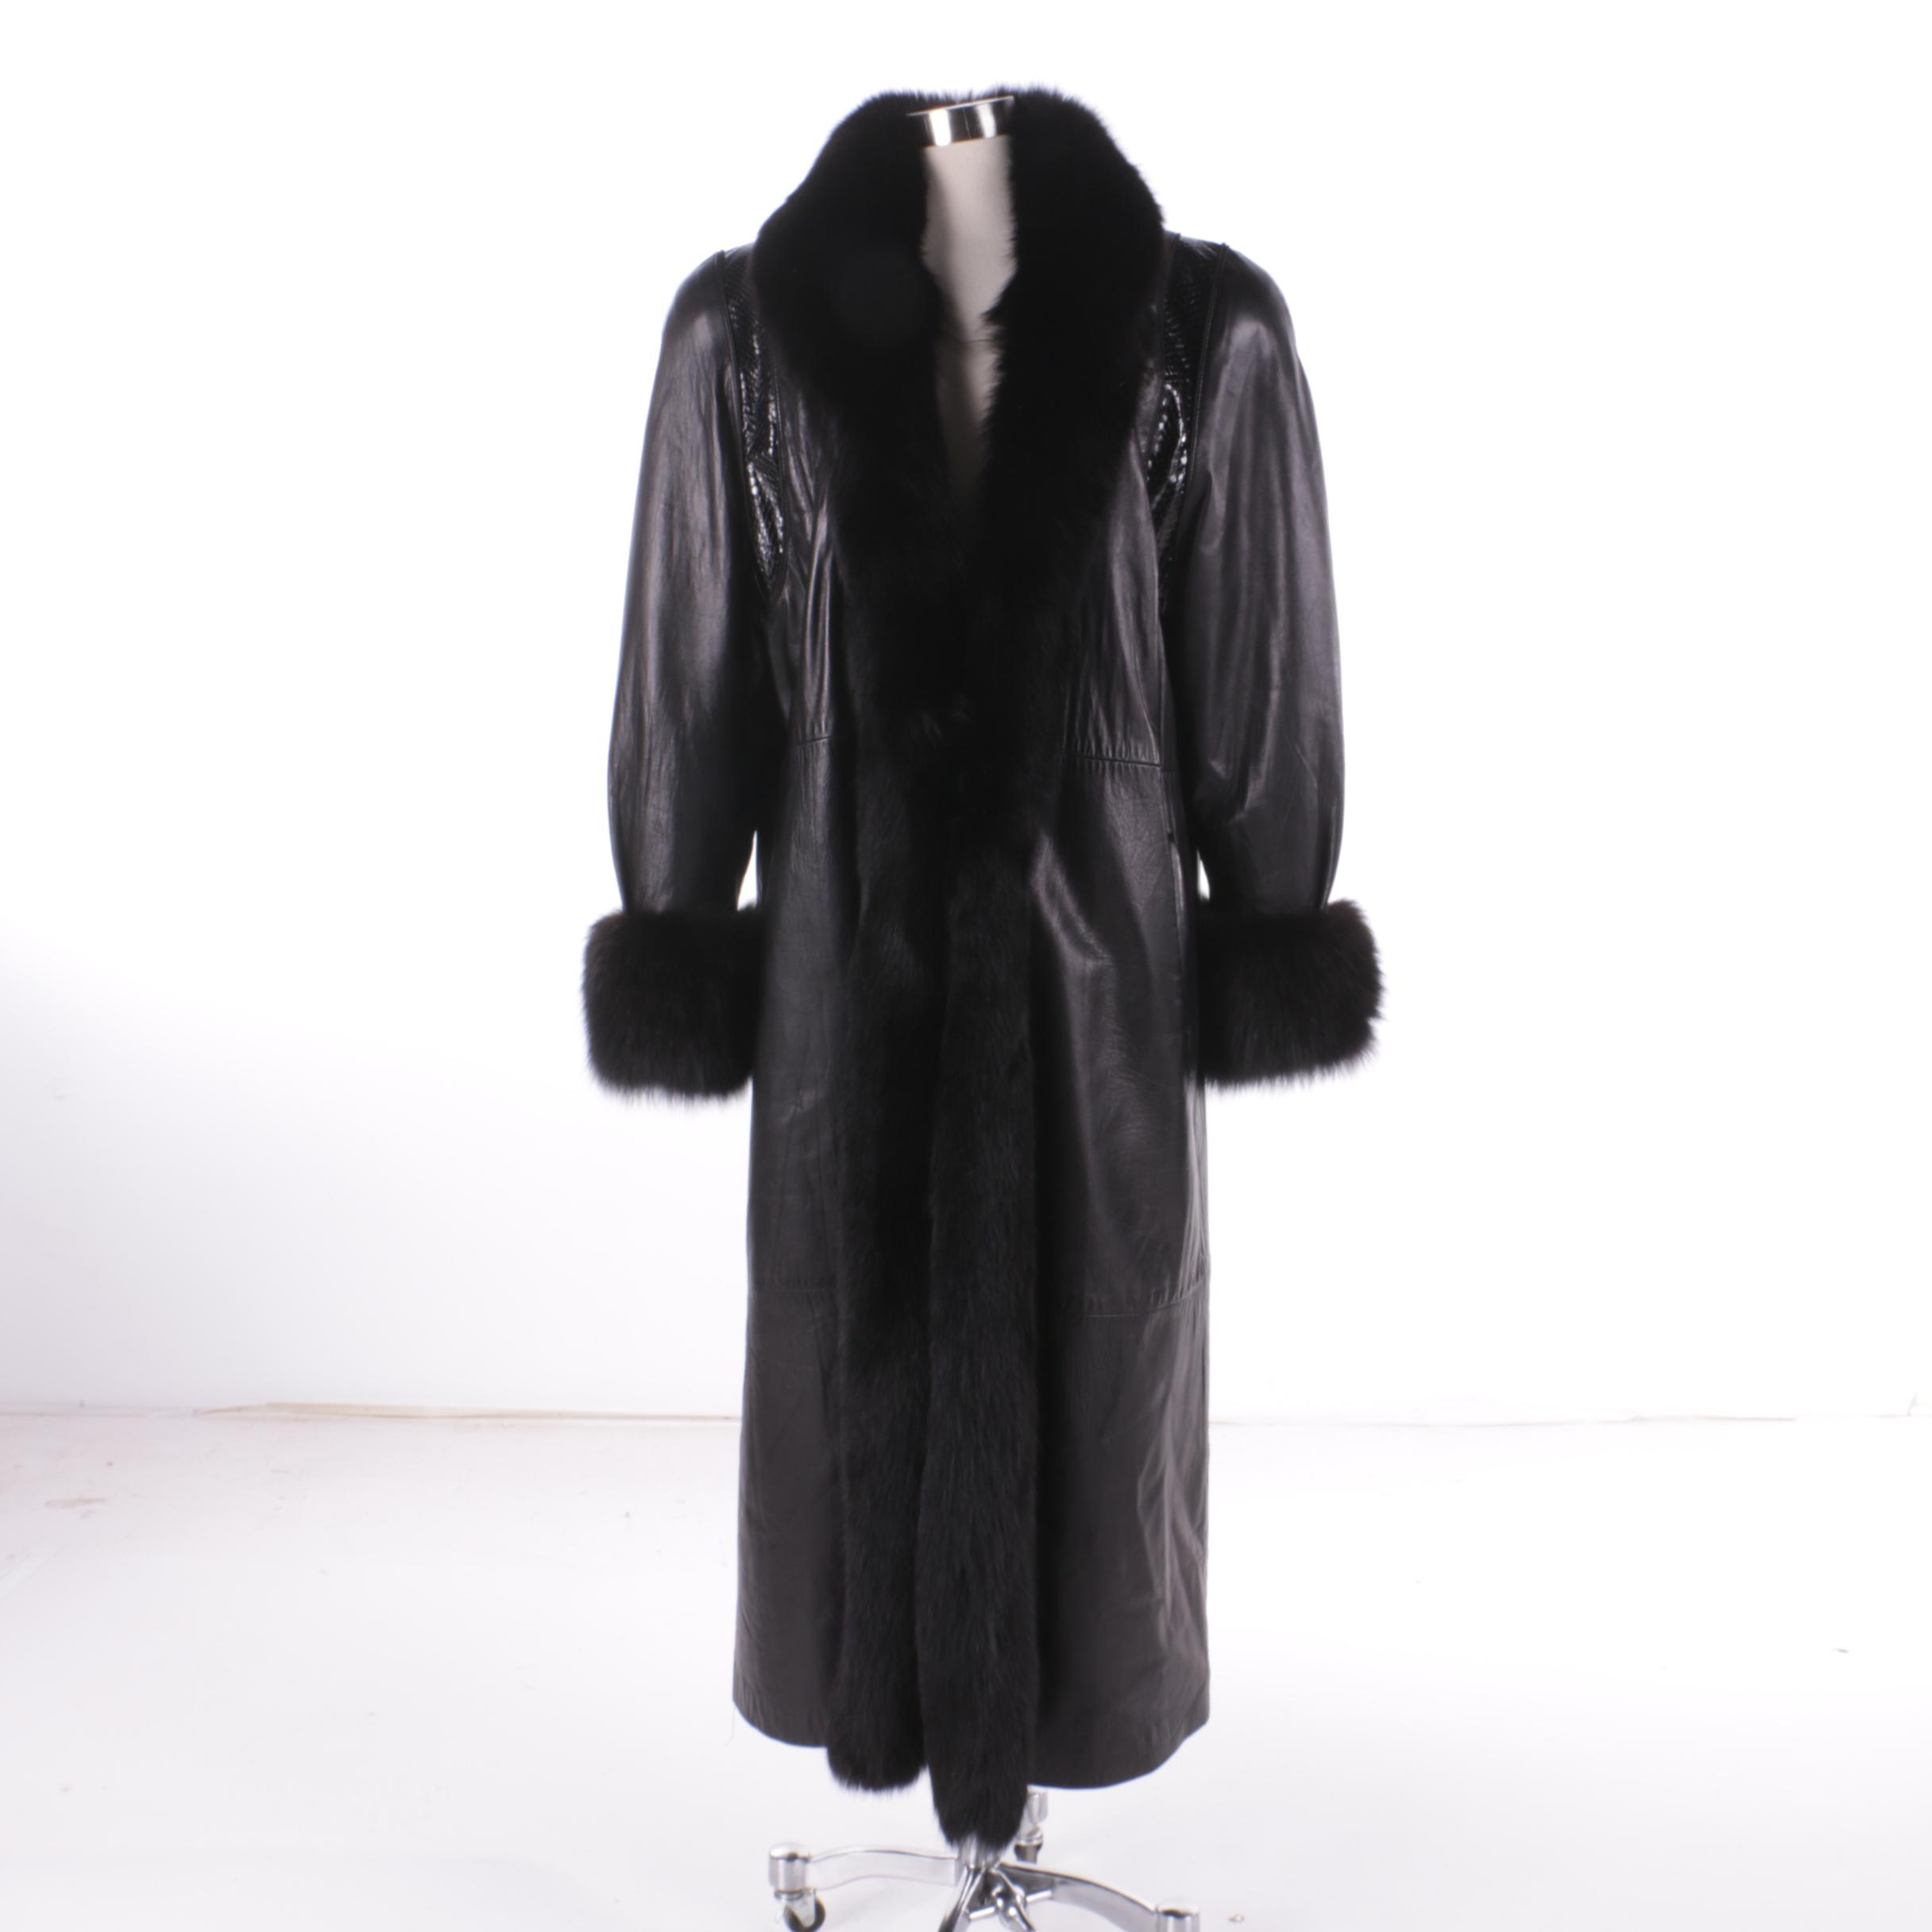 Women's Insulated Black Leather Coat with Fox Fur and Snakeskin Details